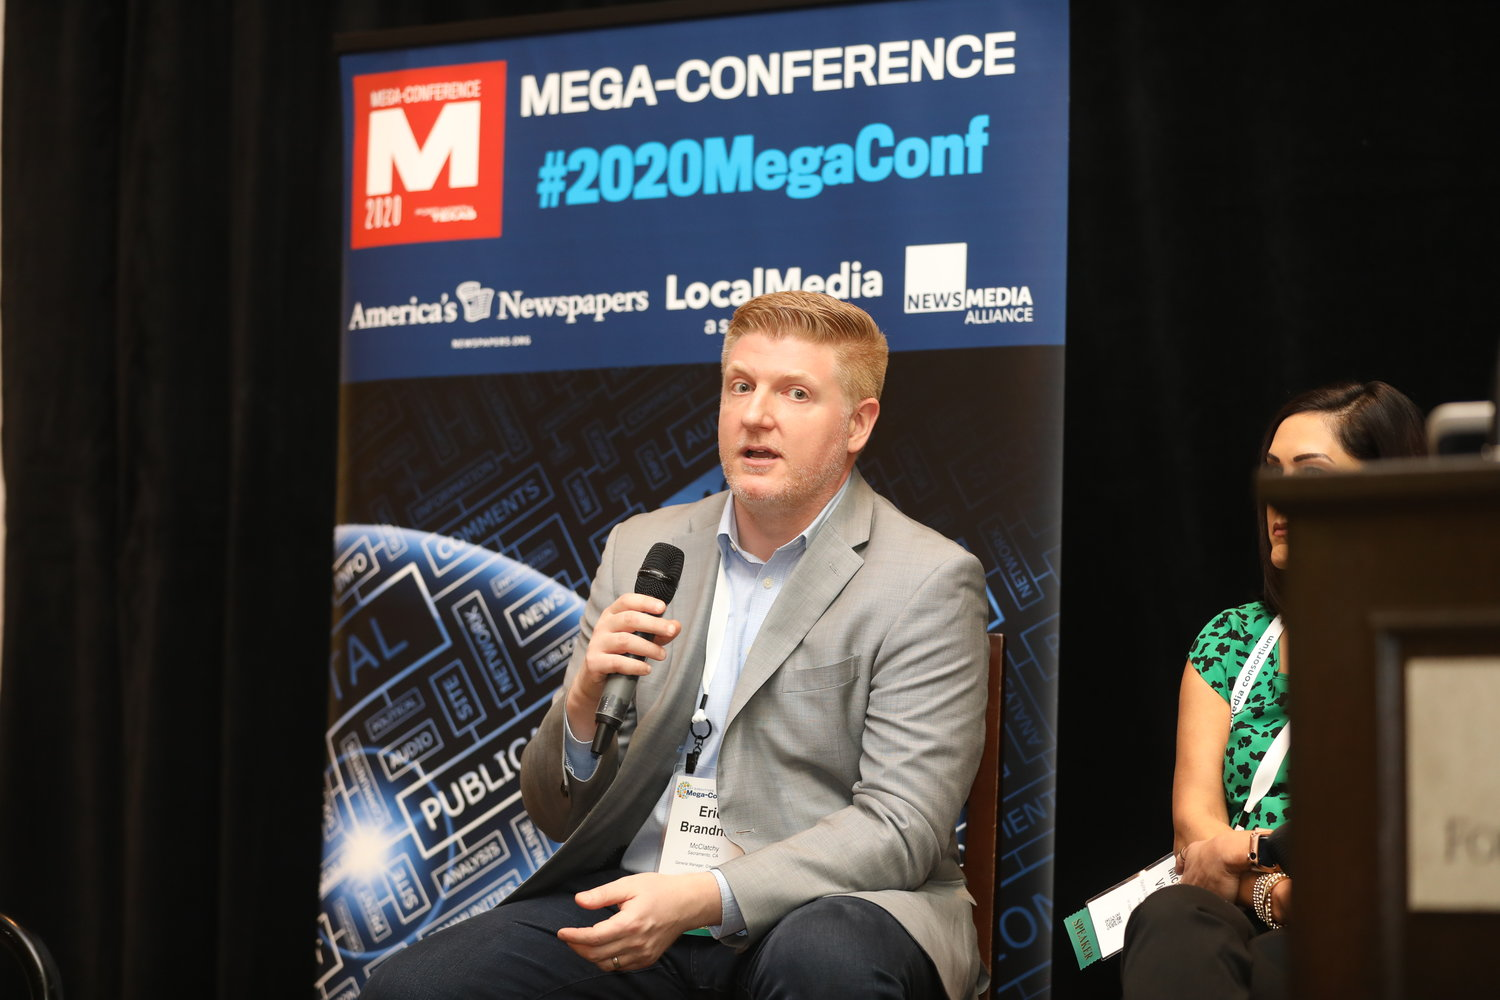 Eric Brandner at the 2020 Mega-Conference. (Photo by Bob Booth)